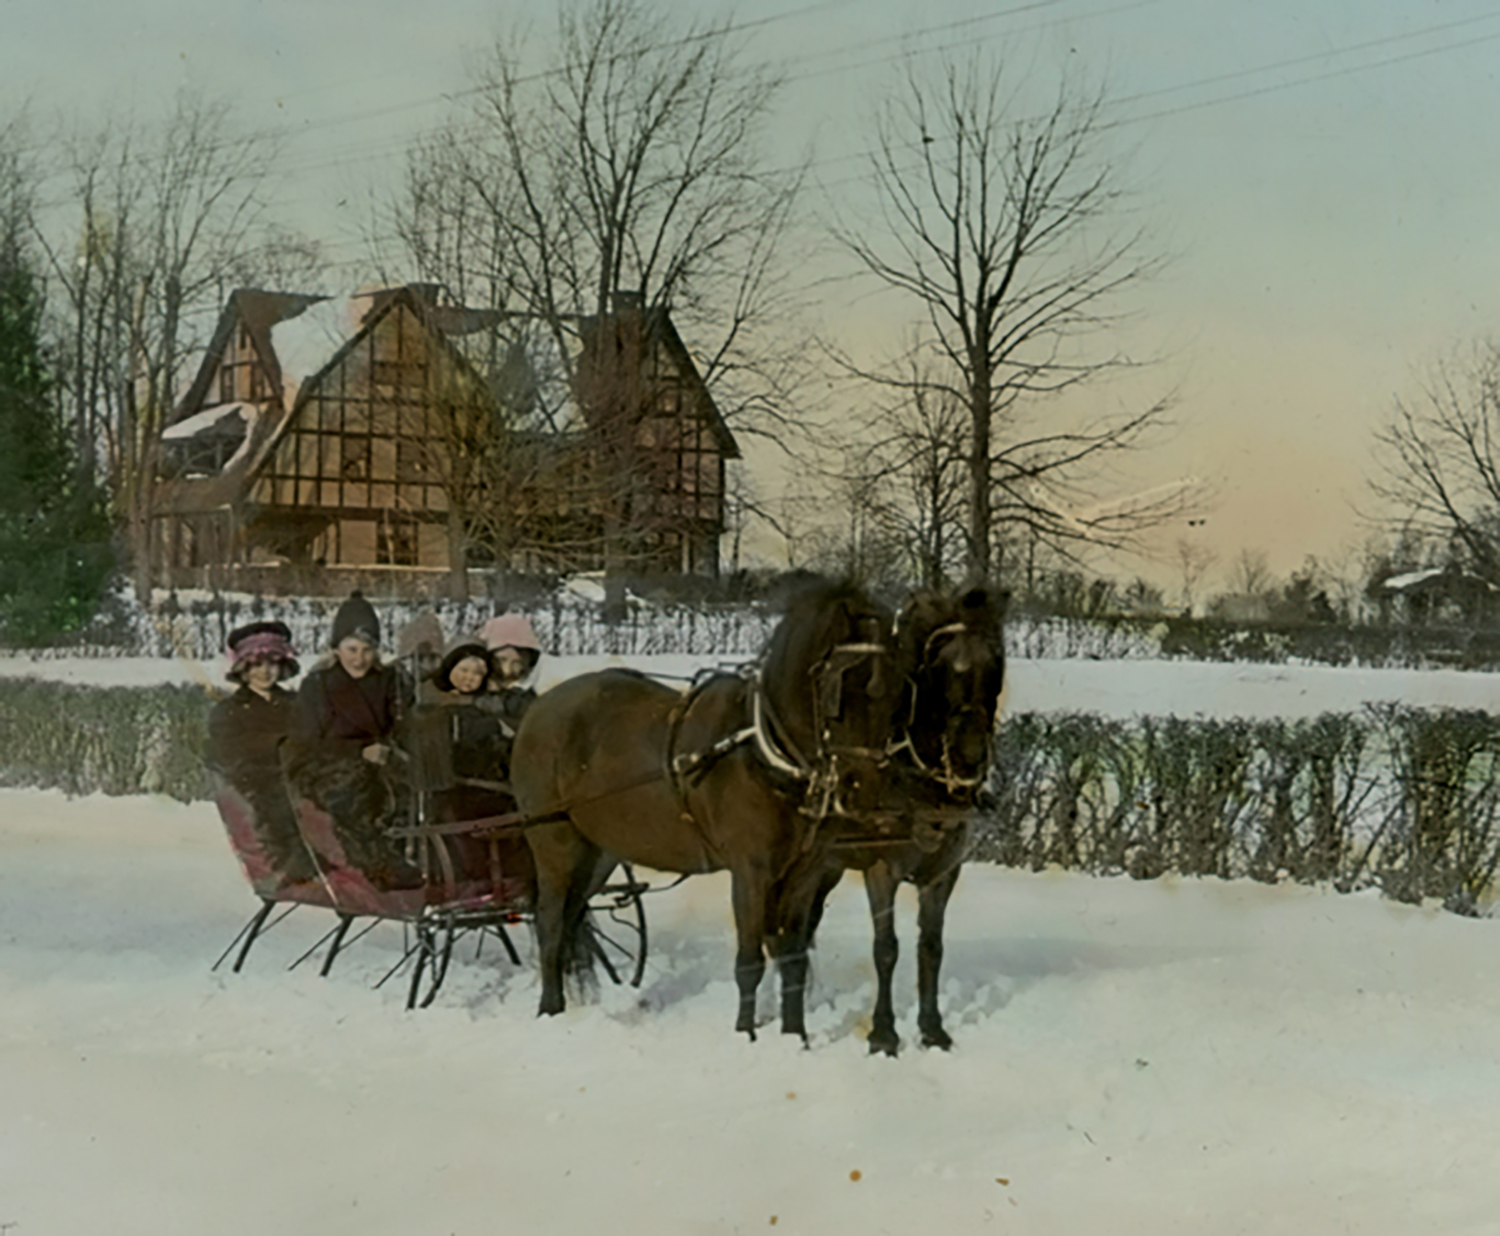 Figure 9: Children in the Cairnwood sleigh, 1914. From a collection of hand-colored lantern slides in the Academy of the New Church Archives showing scenes of early Bryn Athyn.